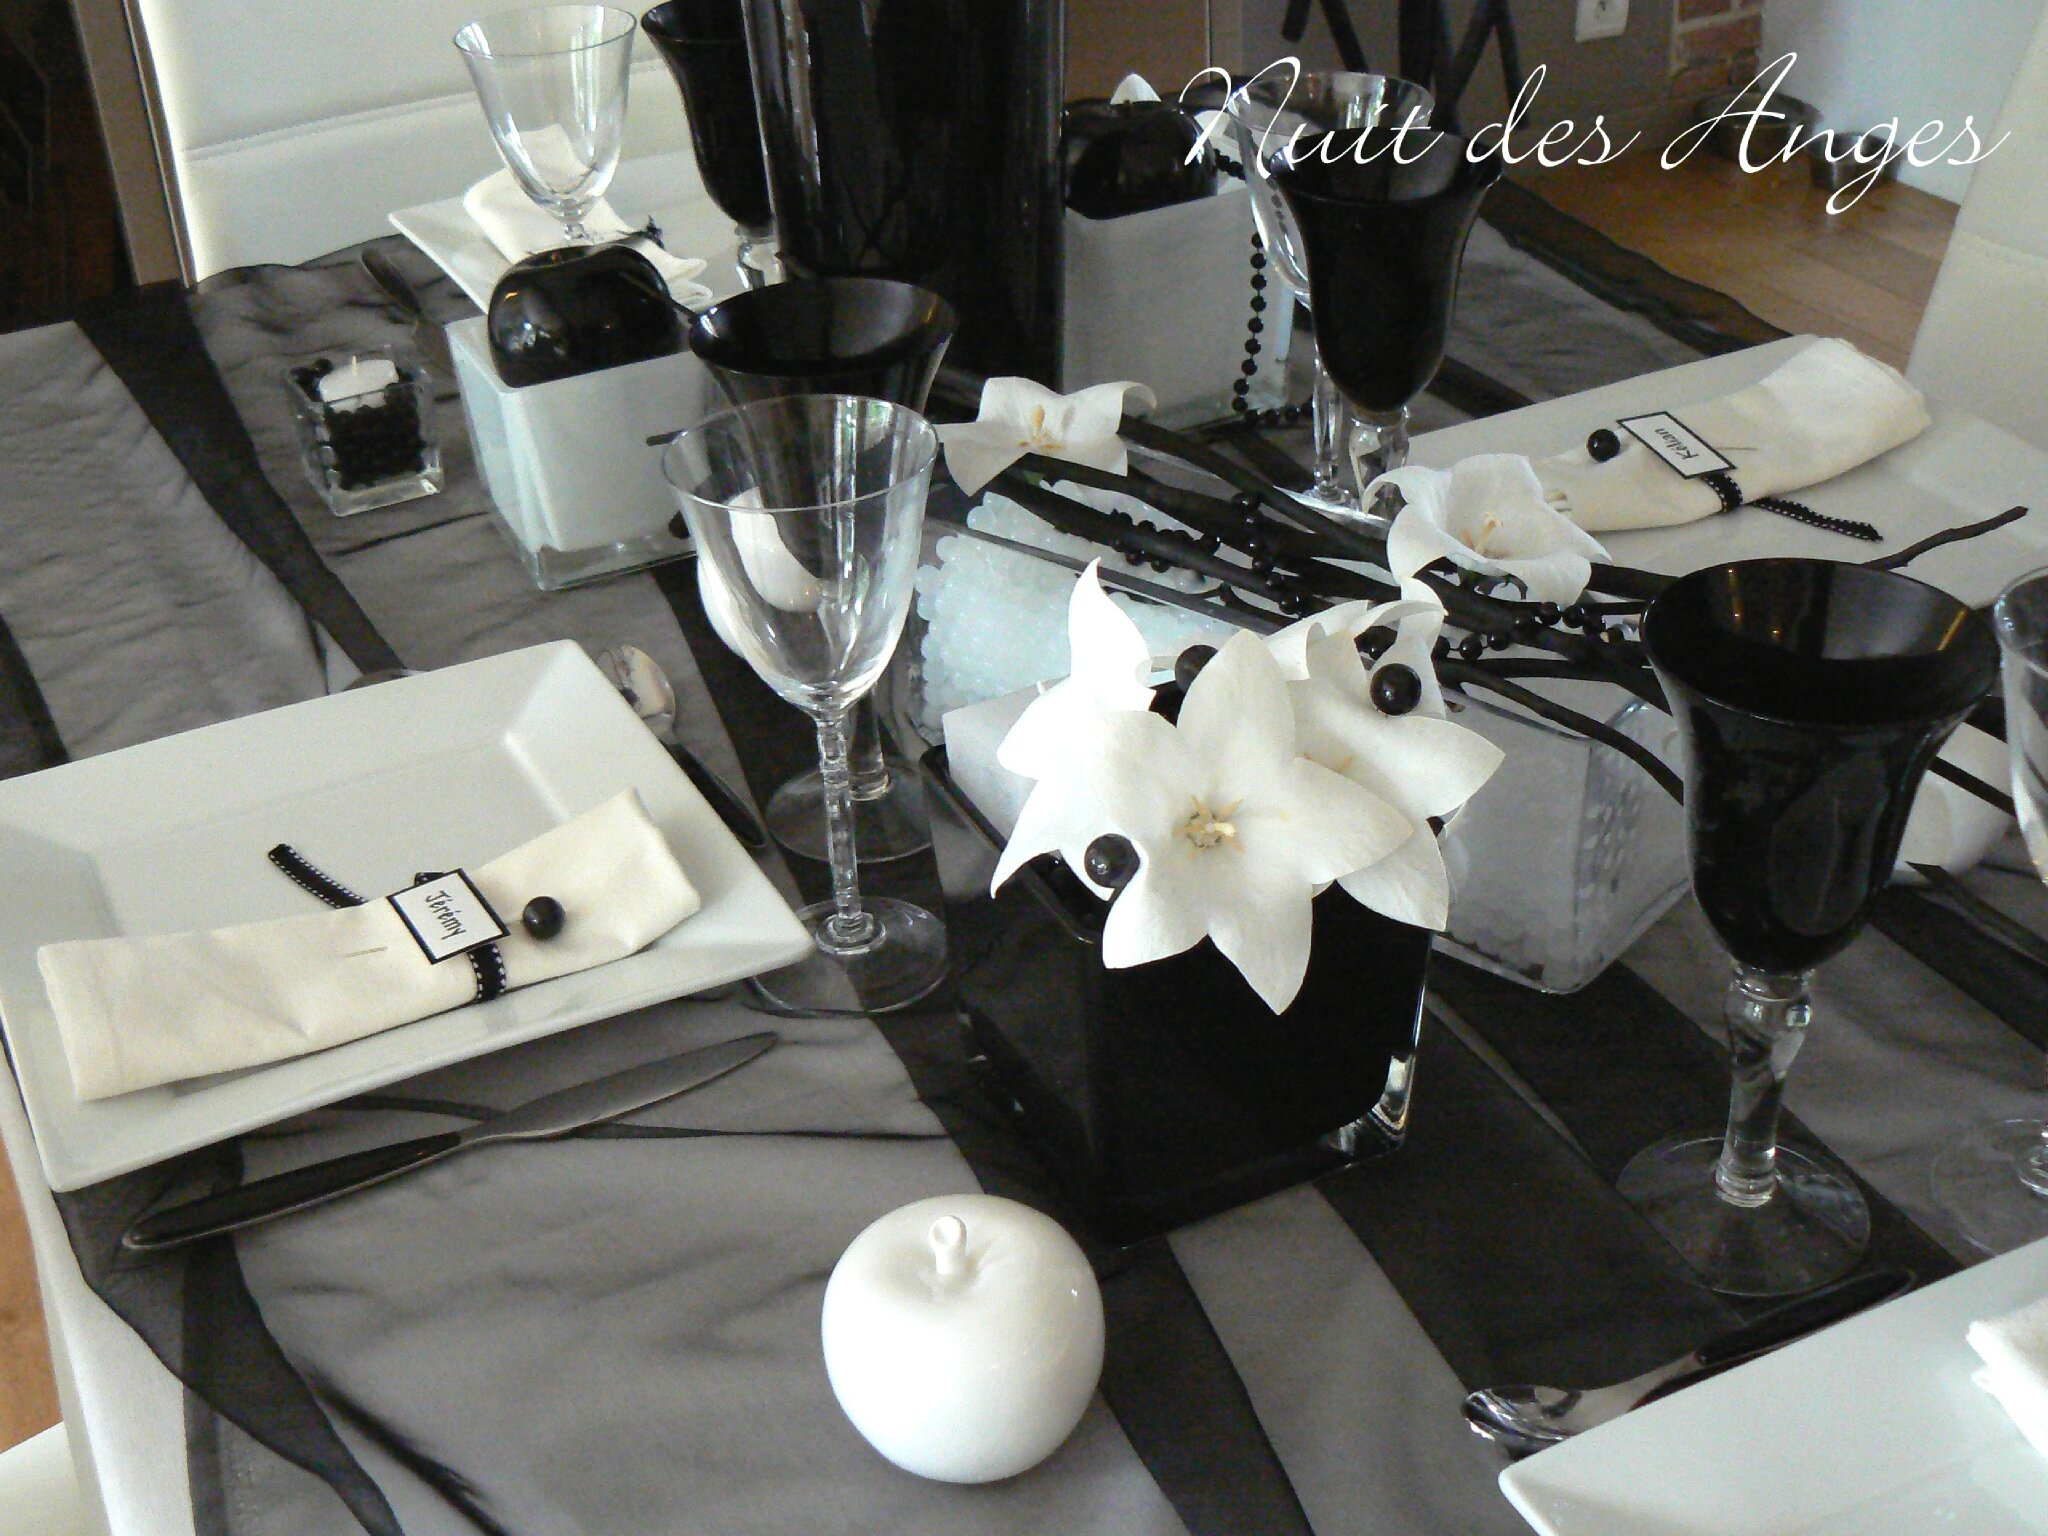 nuit des anges d coratrice de mariage d coration de table noir et blanc 003 photo de. Black Bedroom Furniture Sets. Home Design Ideas